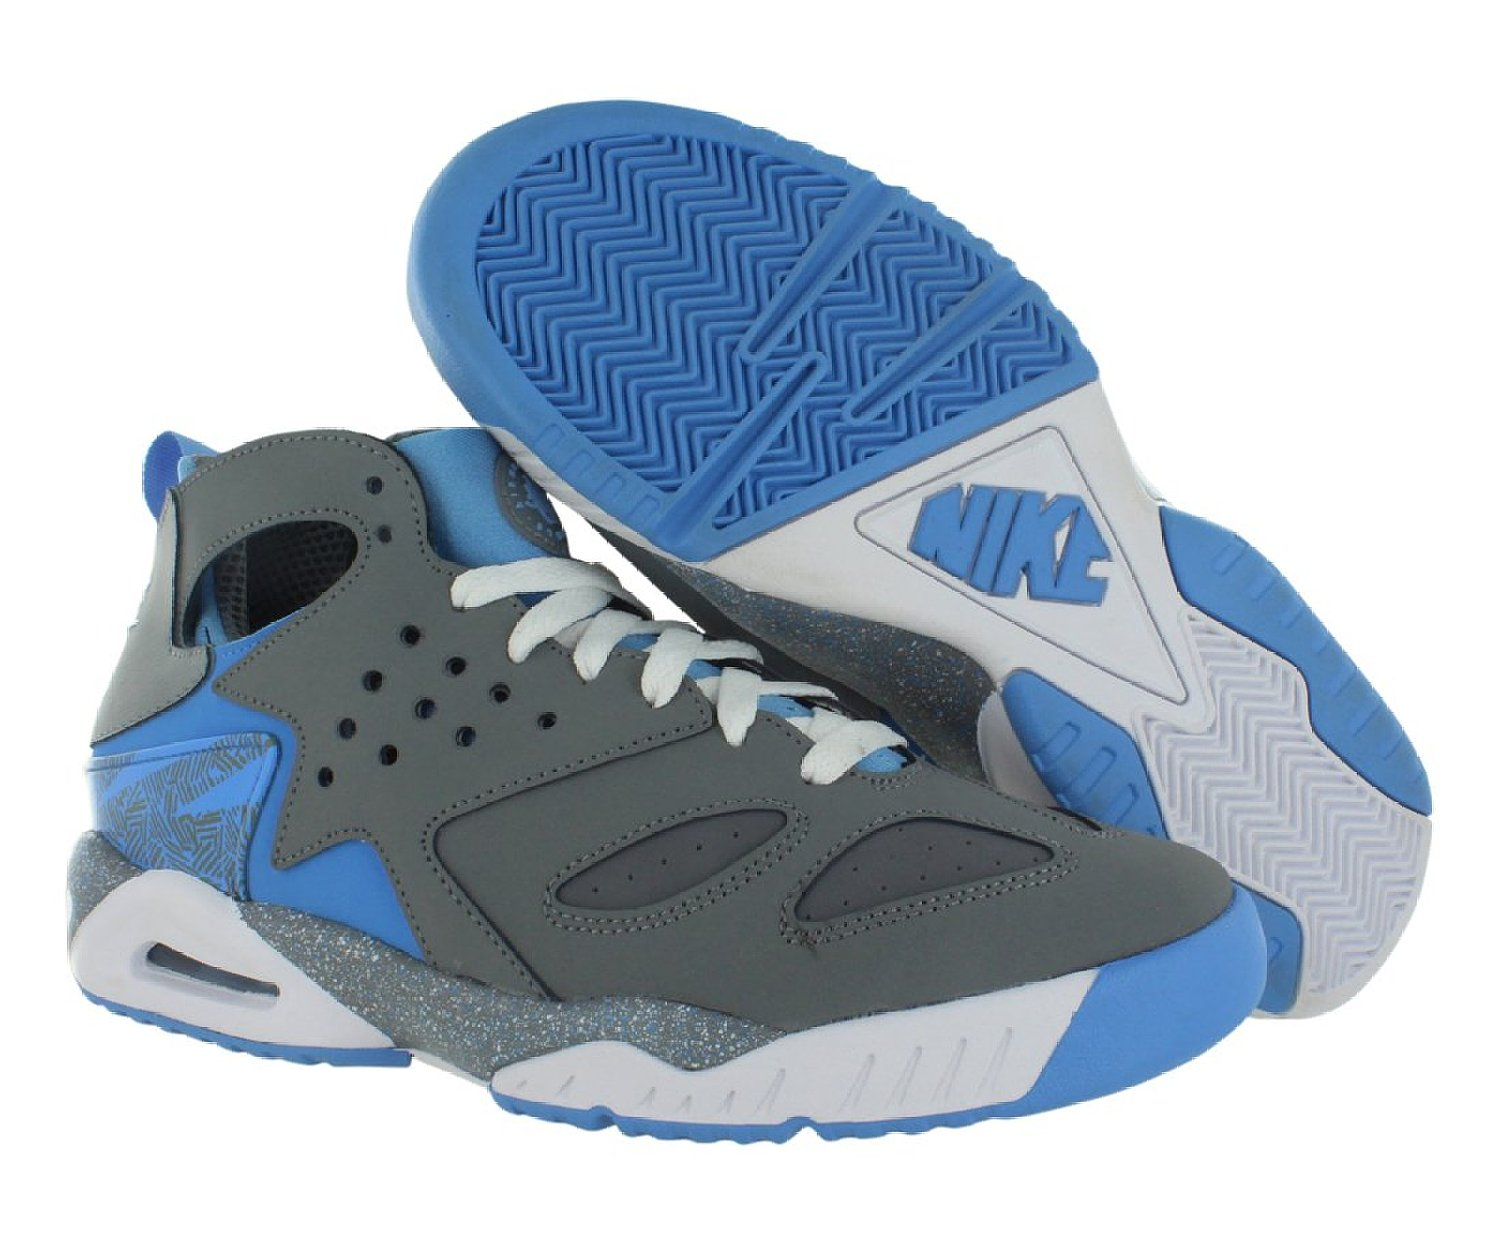 Cool Nike Basketball: Nike Men's Air Tech Huarache Basketball Shoes-Cool Grey